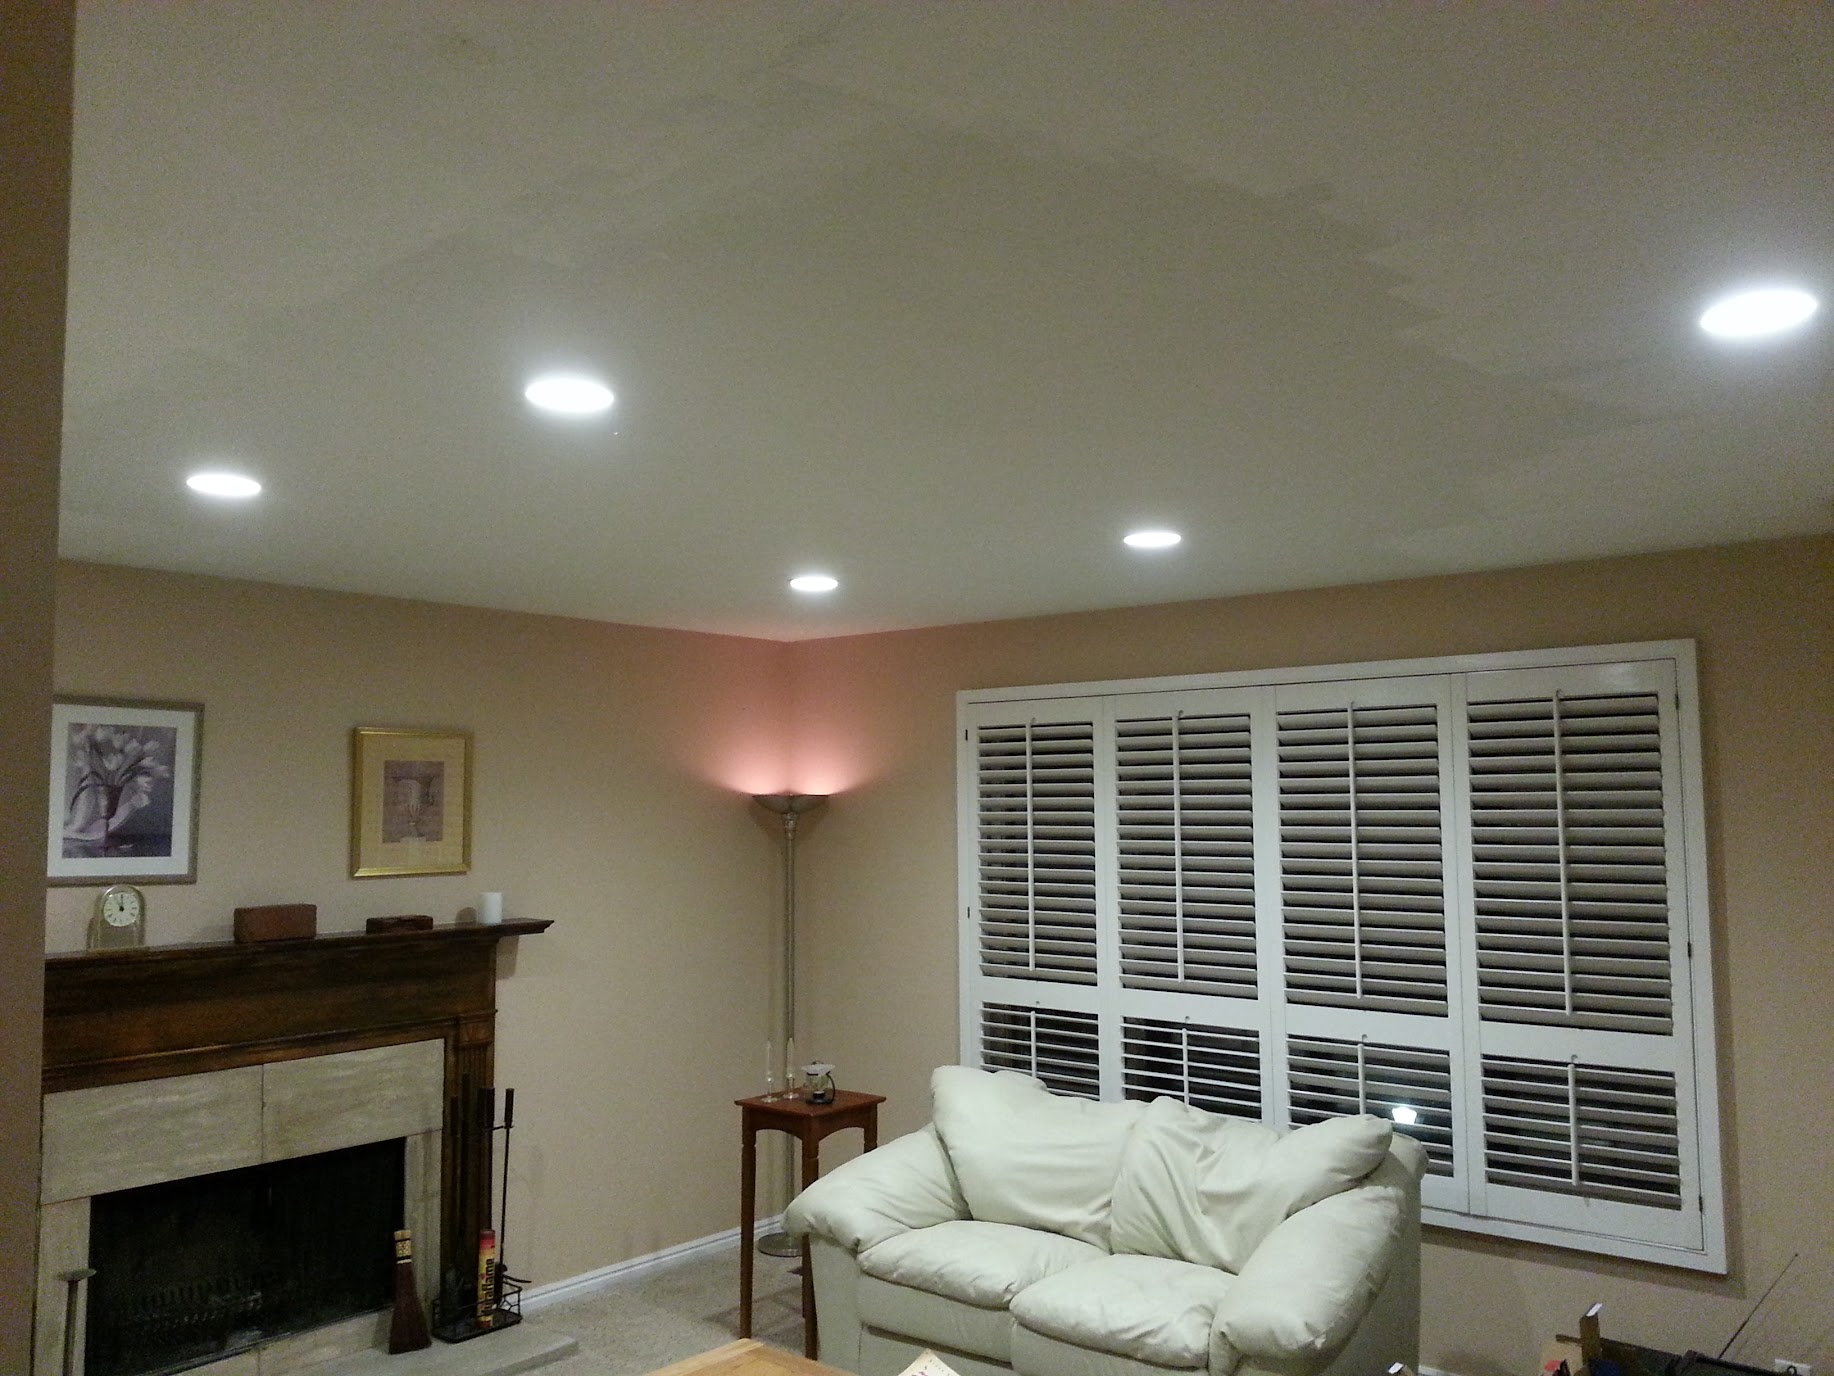 Electrical Using New Construction Recessed Light Housing For Remodel Home